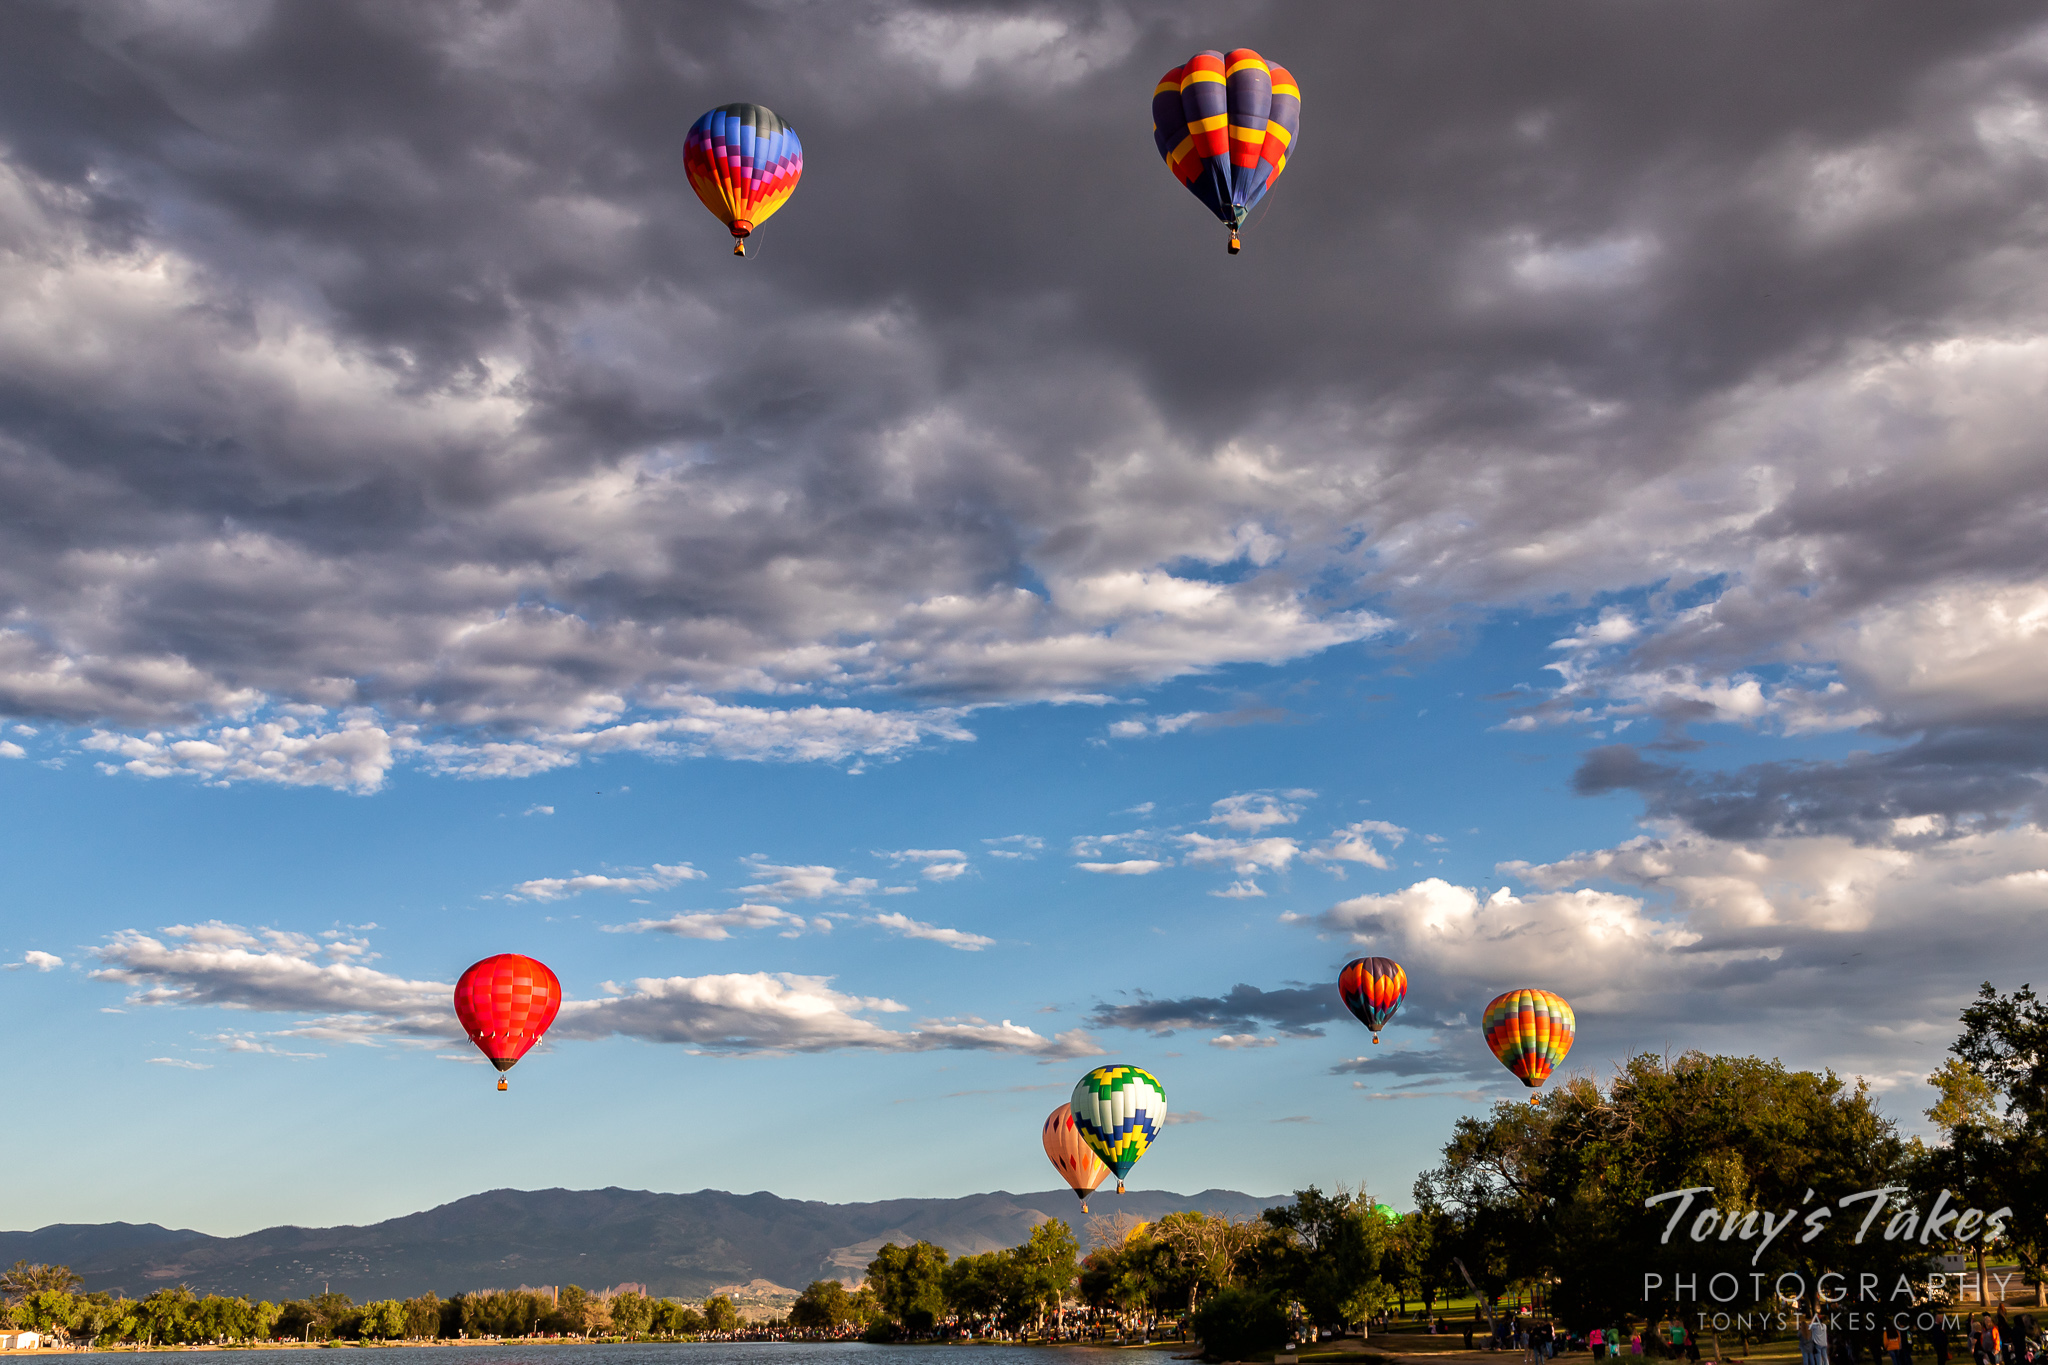 Balloons take to the sky at Memorial Park in Colorado Springs, Colorado. (© Tony's Takes)